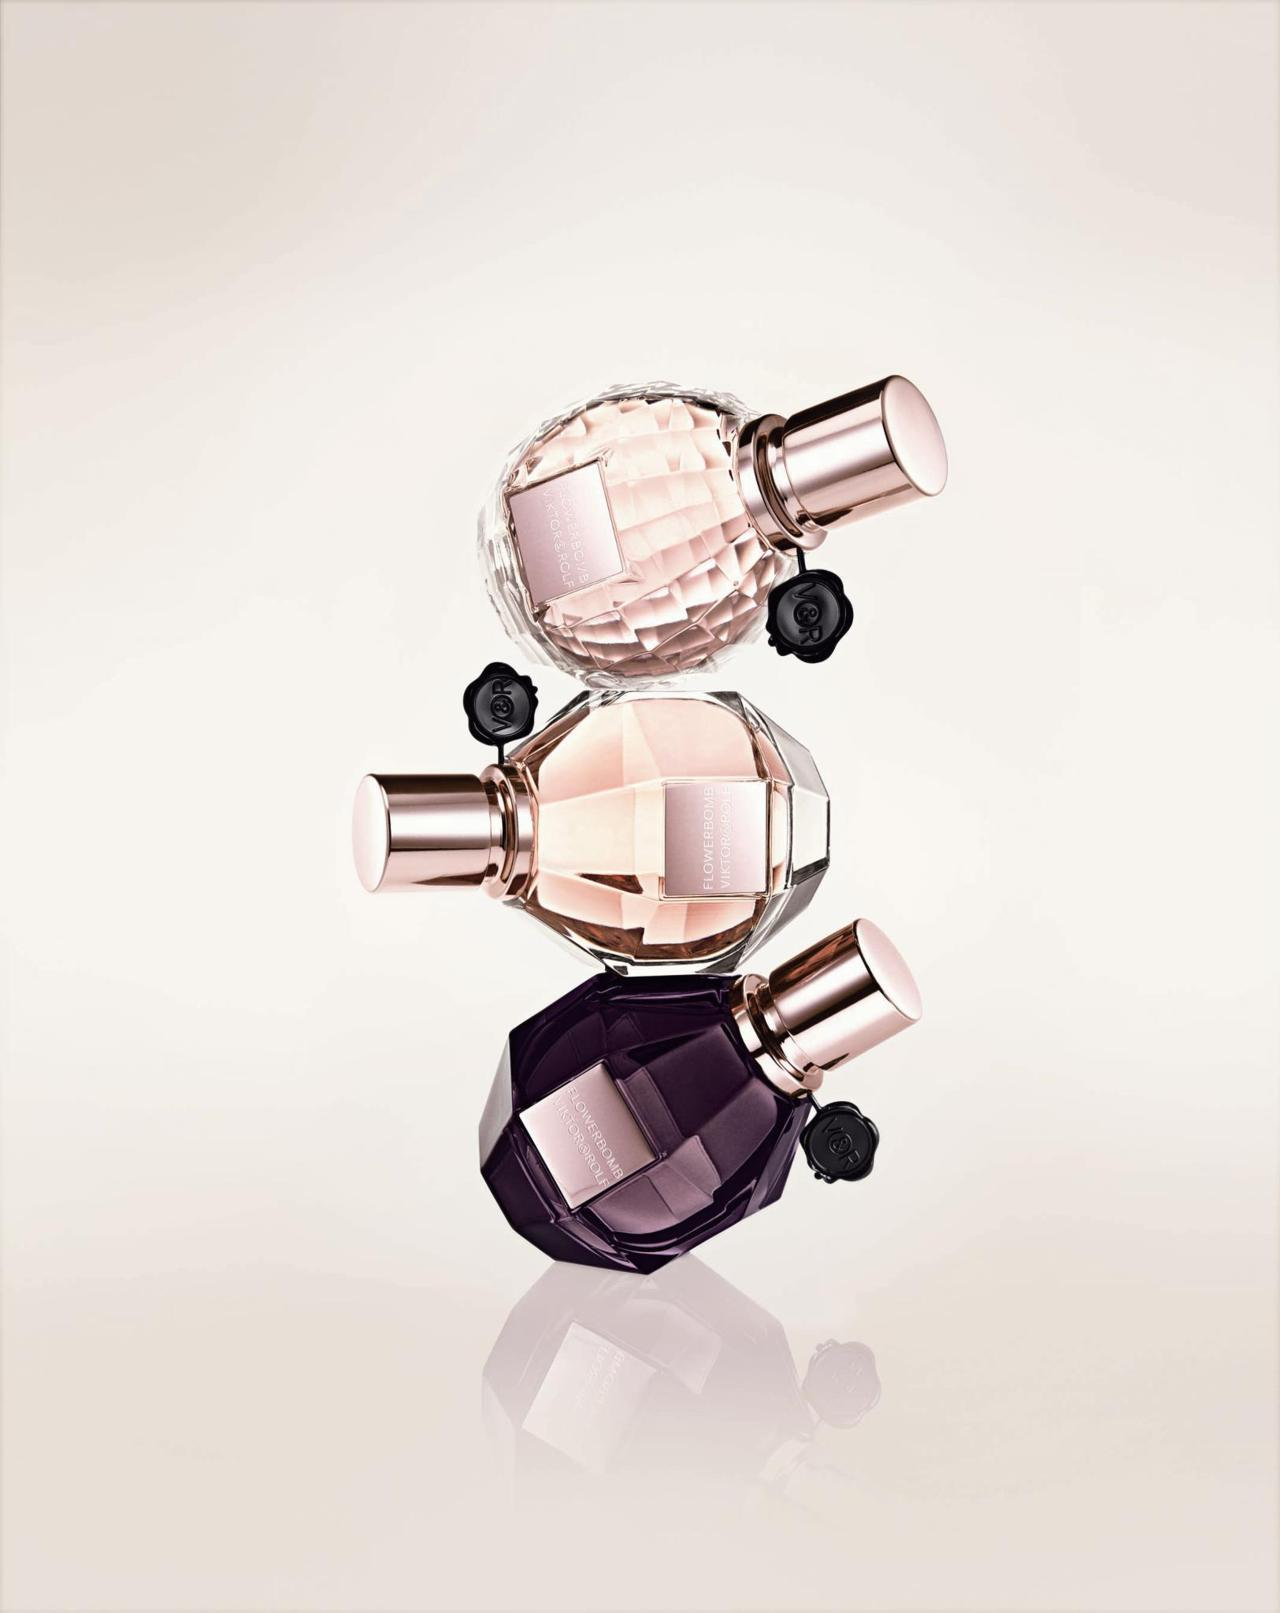 Bottles of Viktor&Rolf's Flower Bomb